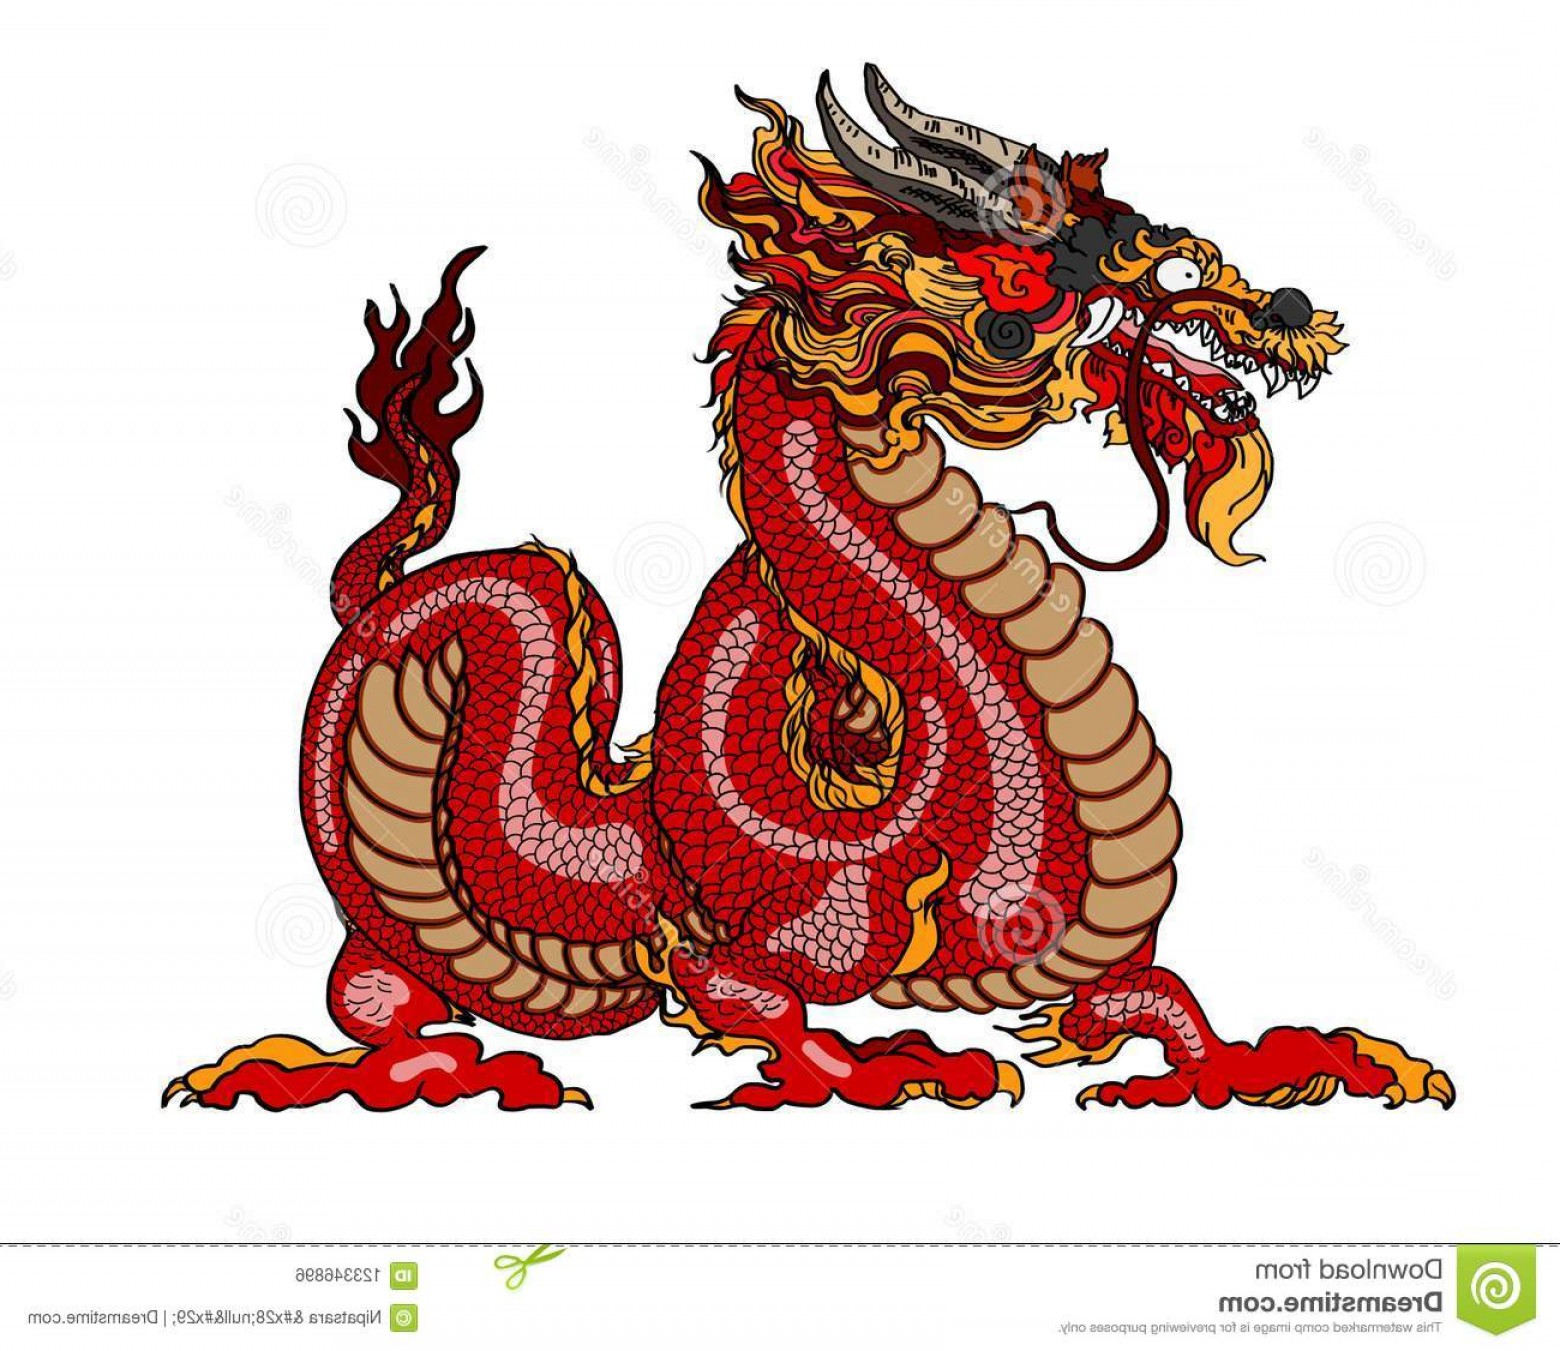 Oriental Dragon Vector: Red Dragon Magical Creatures Known Chinese Western Literature Dragon Animal Tattoo Design Chinese Dragon Vector Hand Image